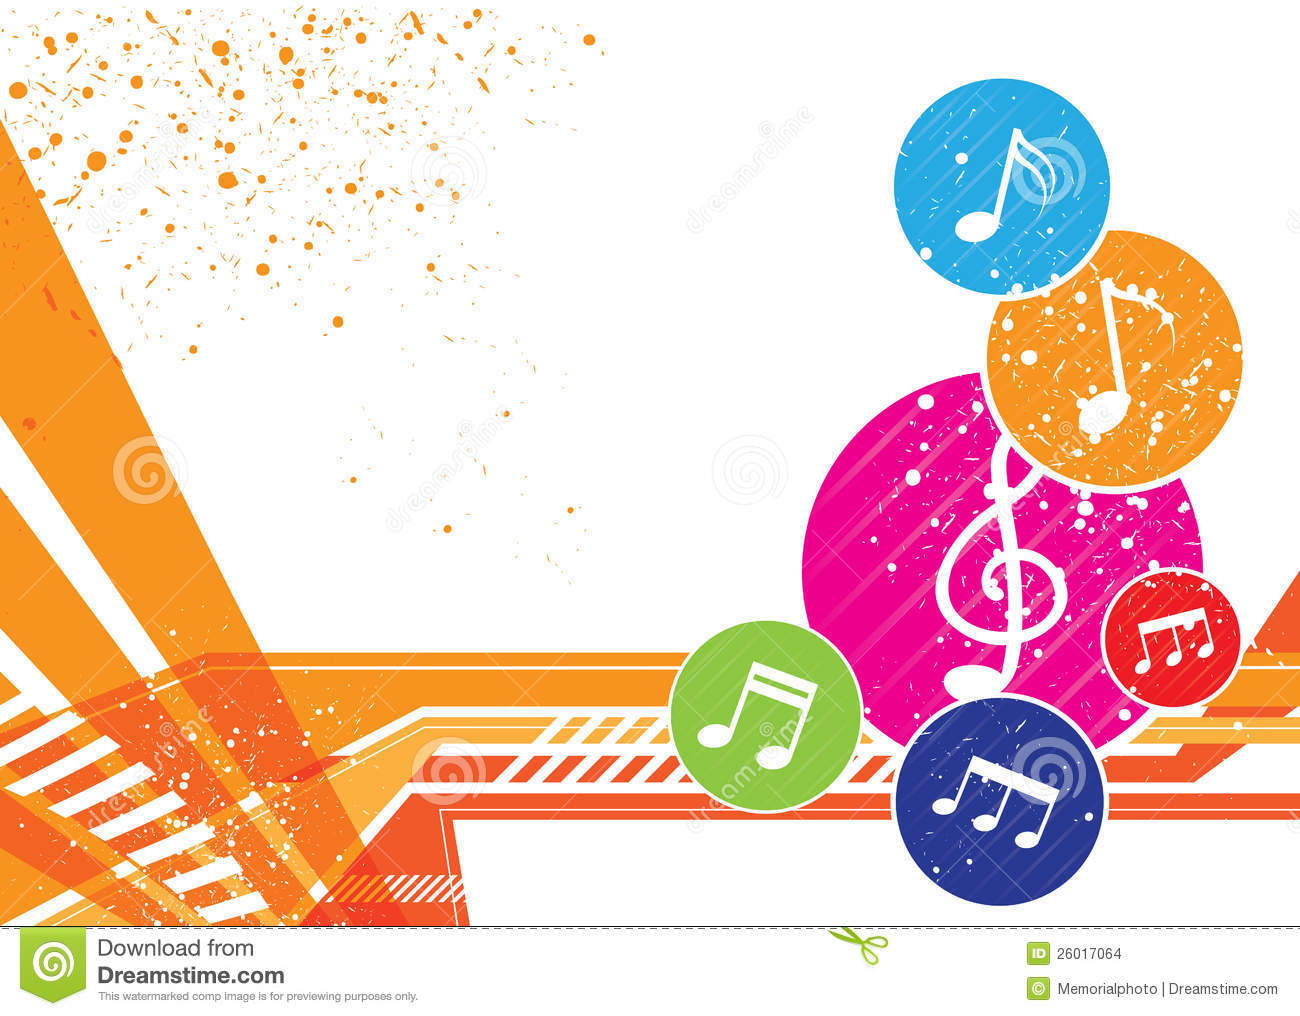 Music Notes Background Design Stock Images - Image: 26017064